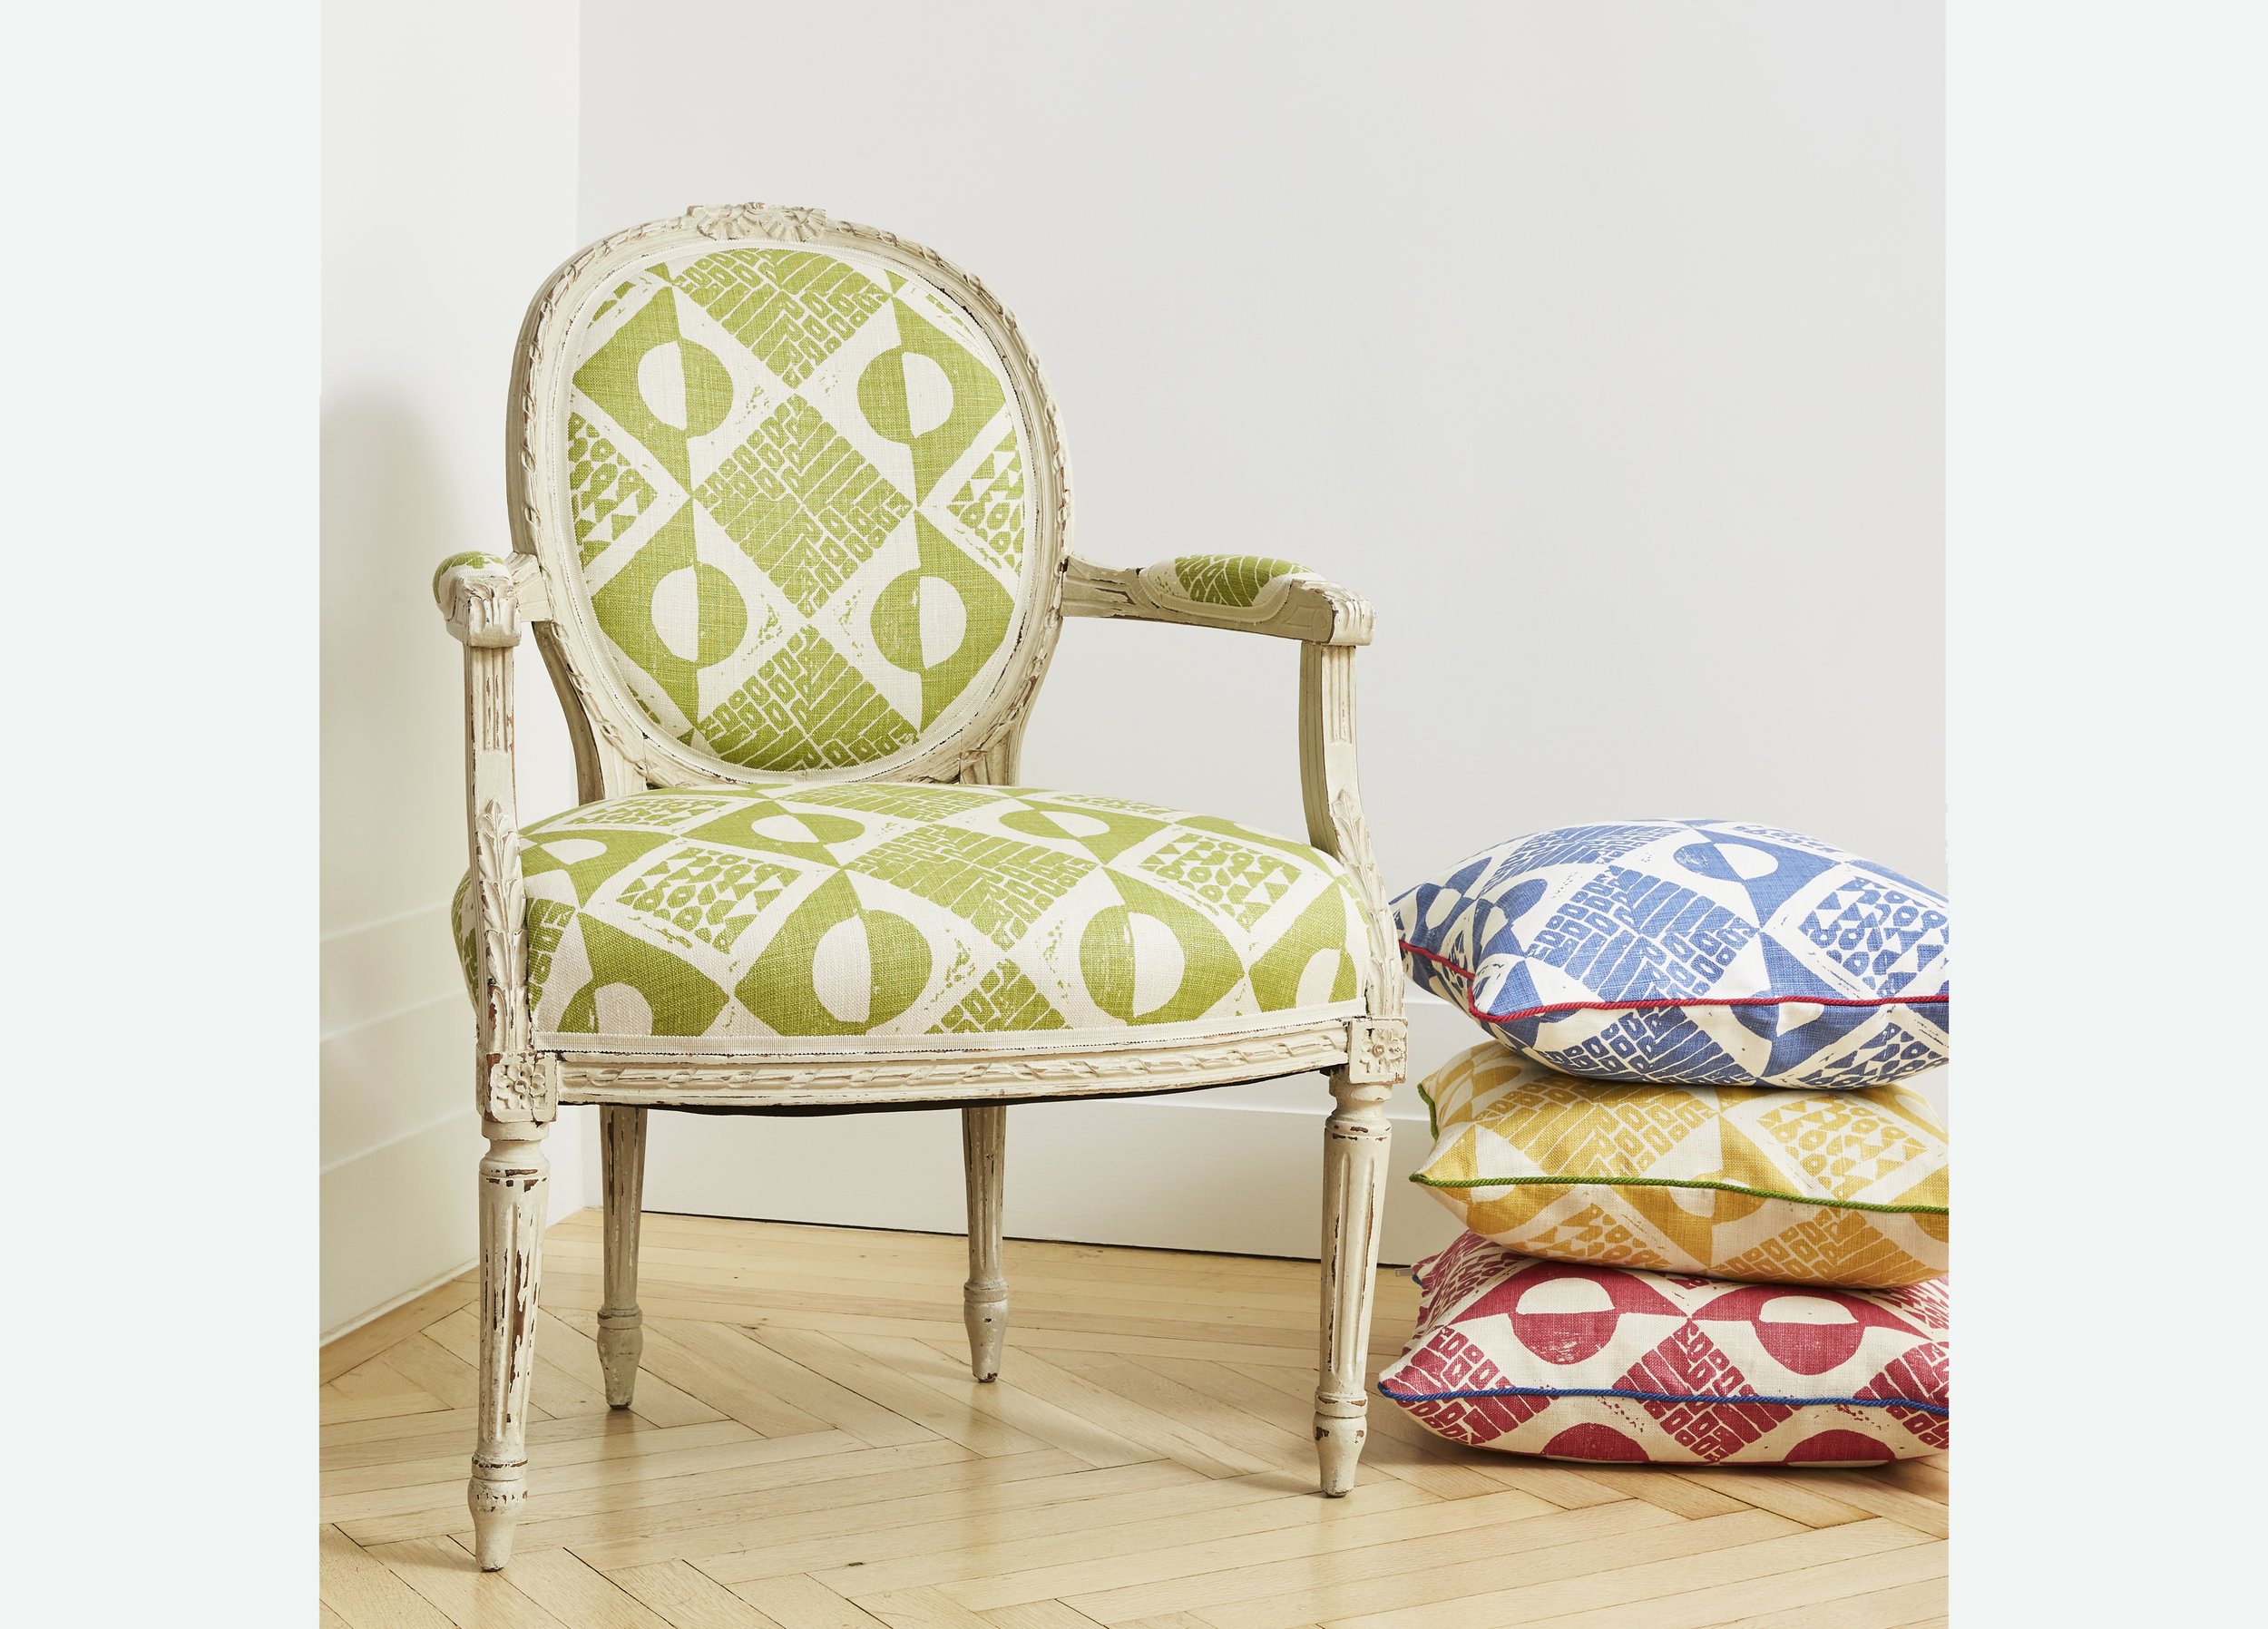 Blithfield_circles&squares_chair_cushions_Horizontal.jpg